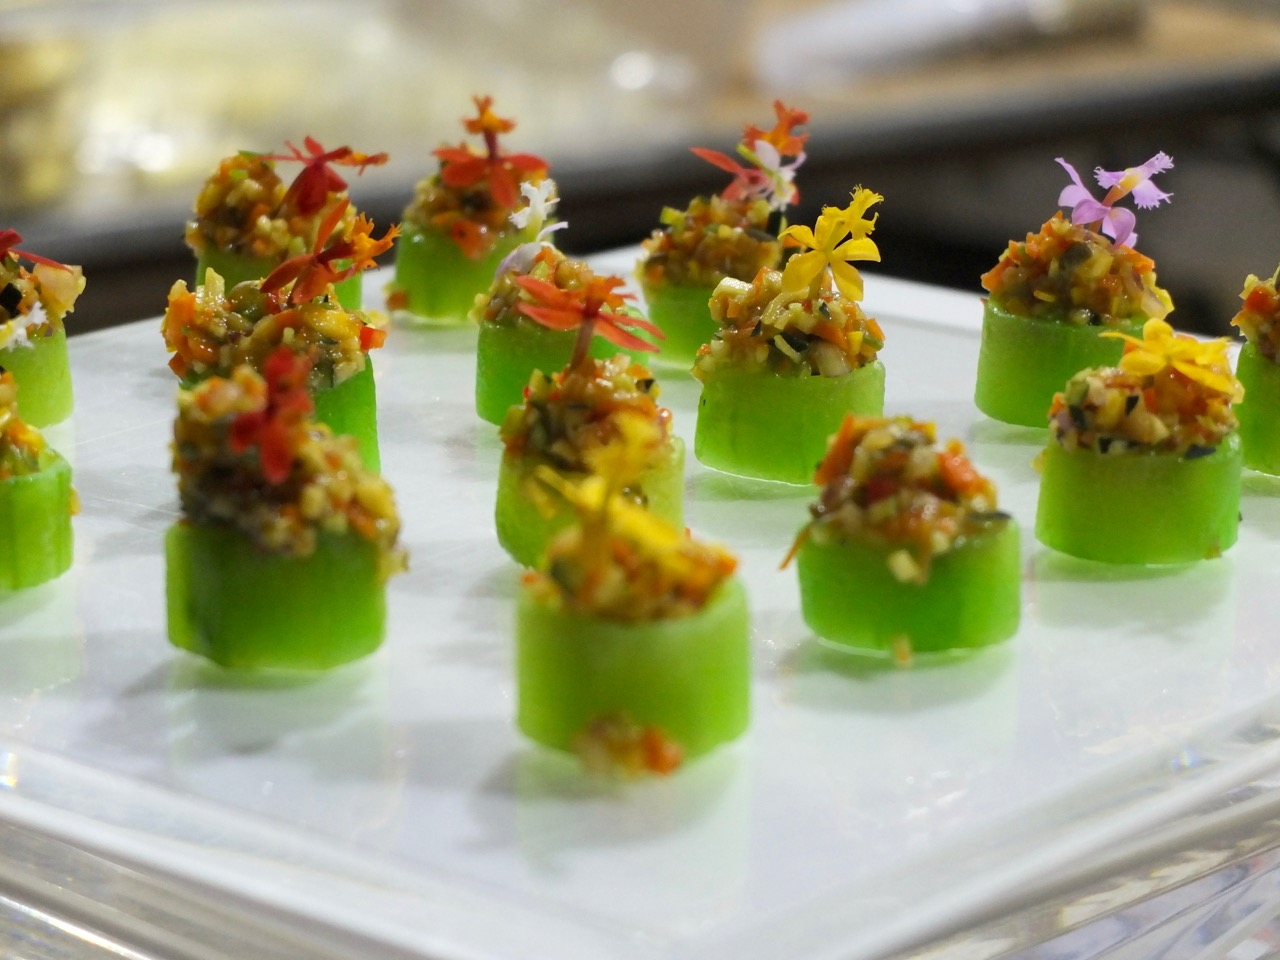 Vegan Hors D'oeuvres: Veggie Tartar in Cucumber Cup with a Micro Flower